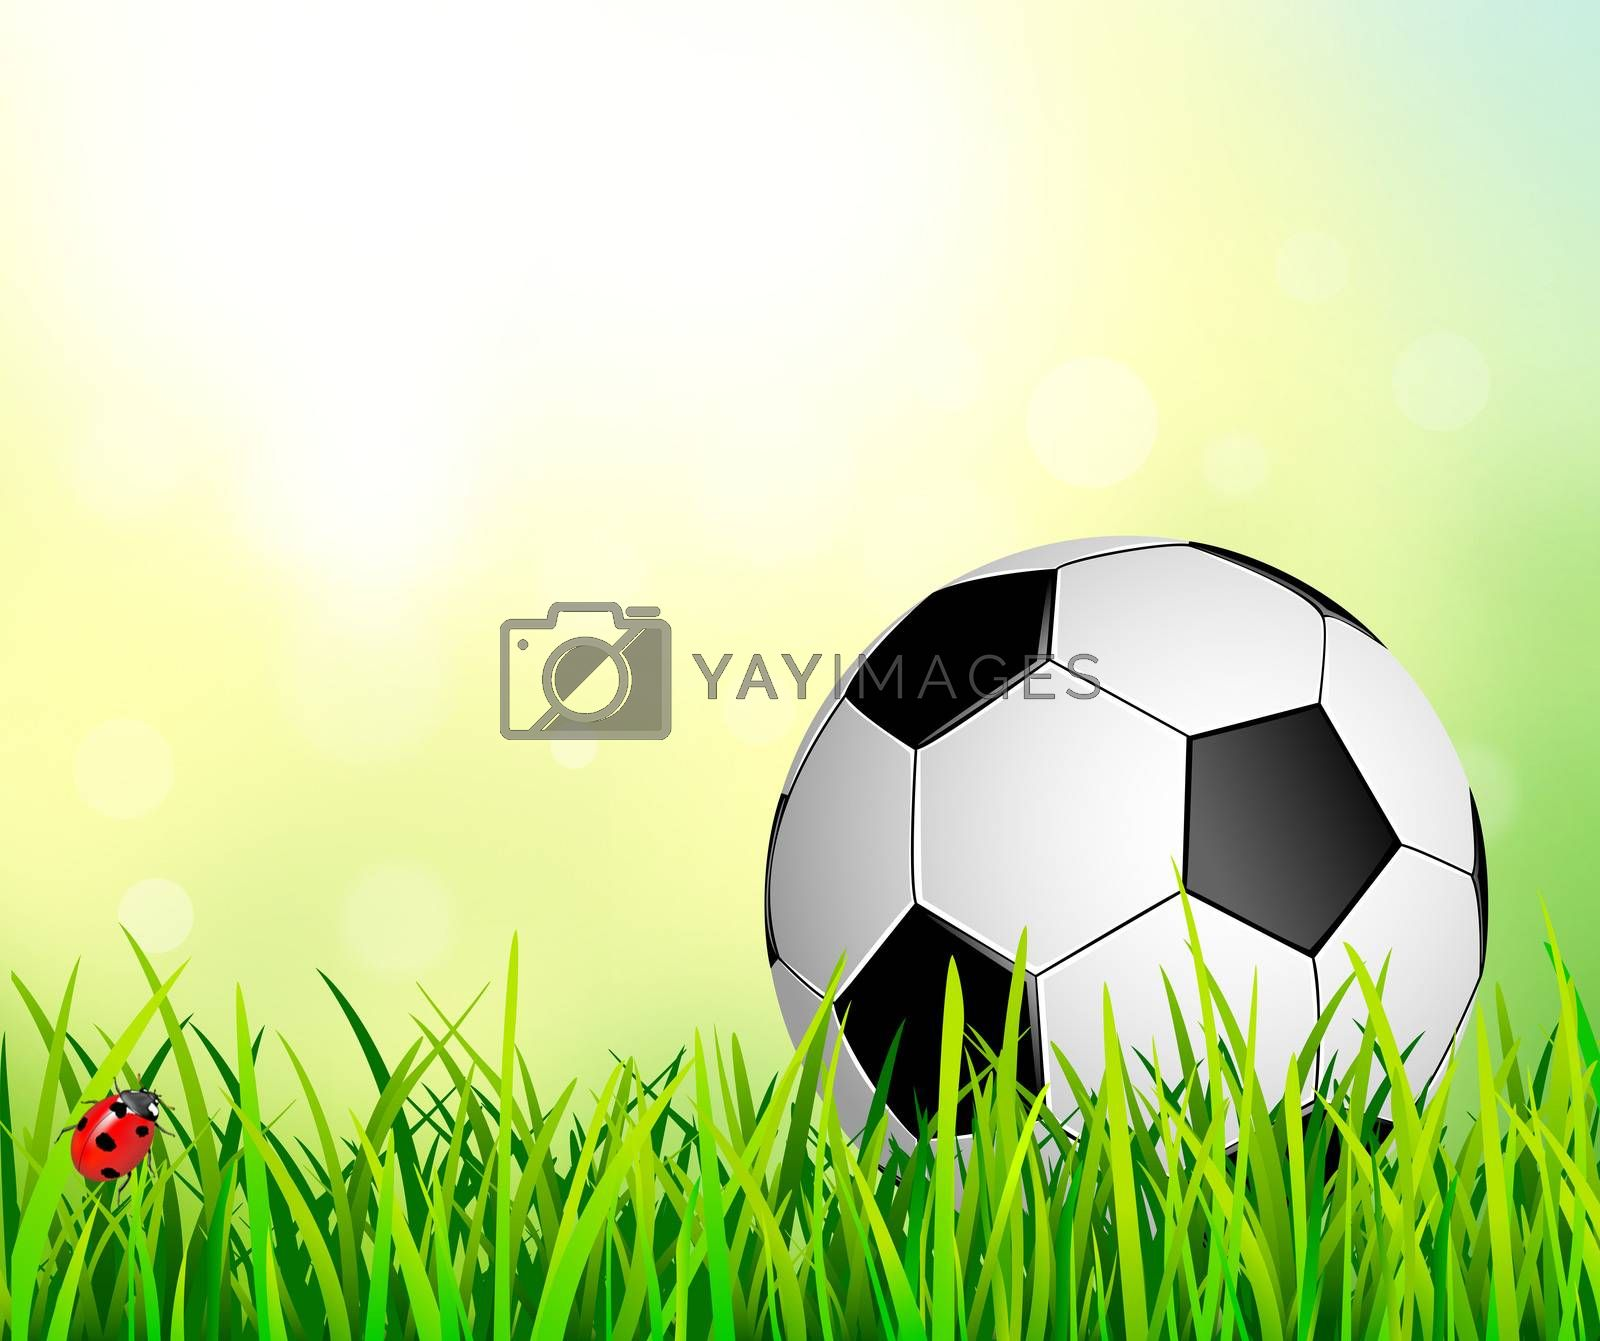 Soccer ball on an abstract background.